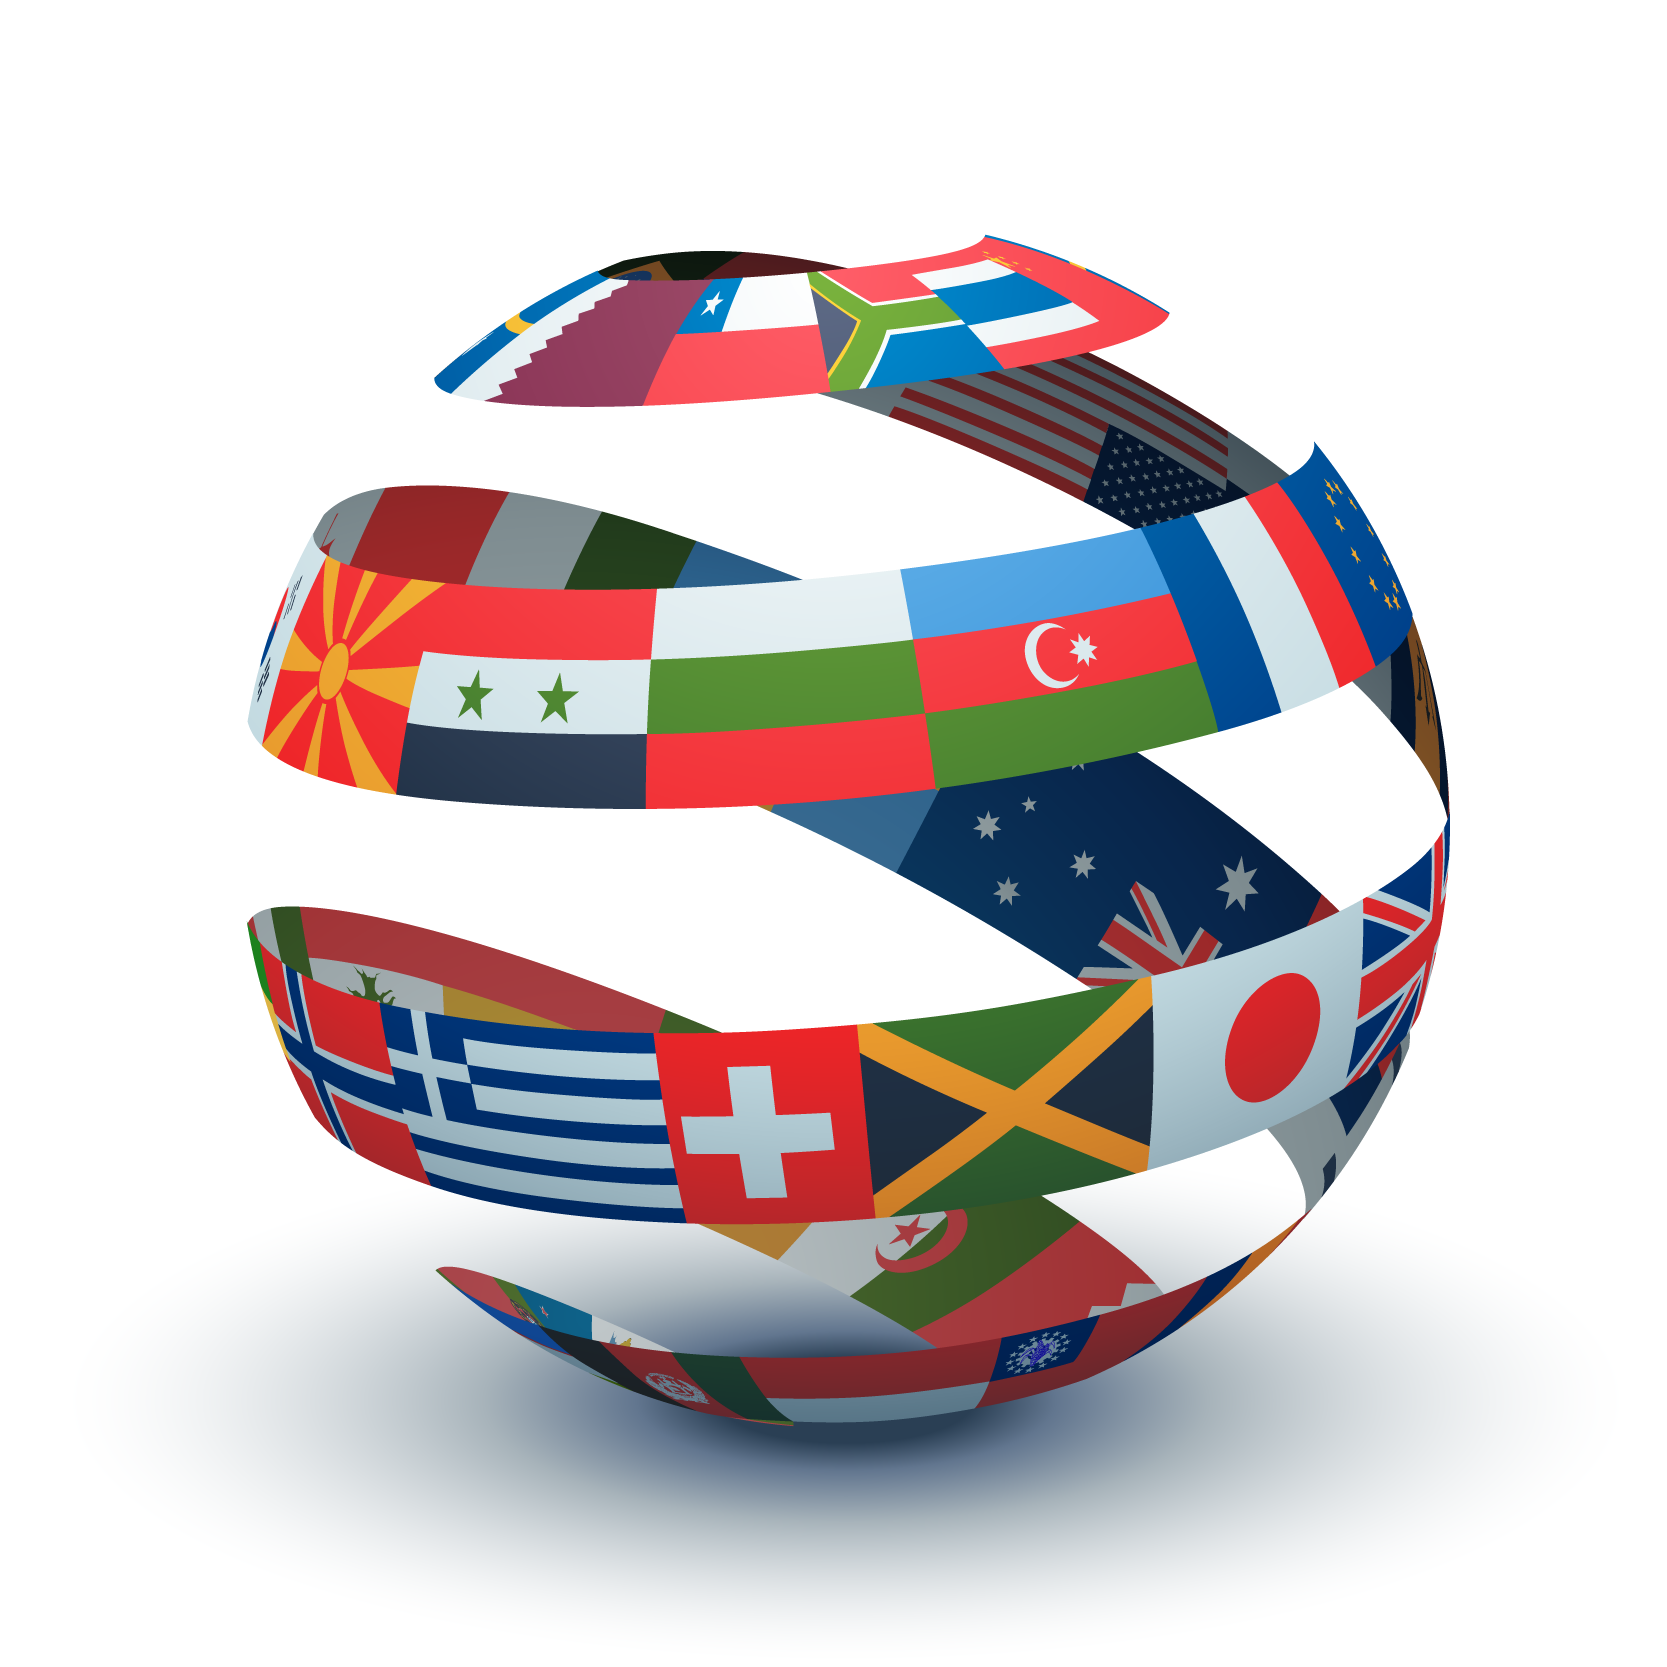 global_translation Top 10 Lowest Cost Business Ideas for Beginners